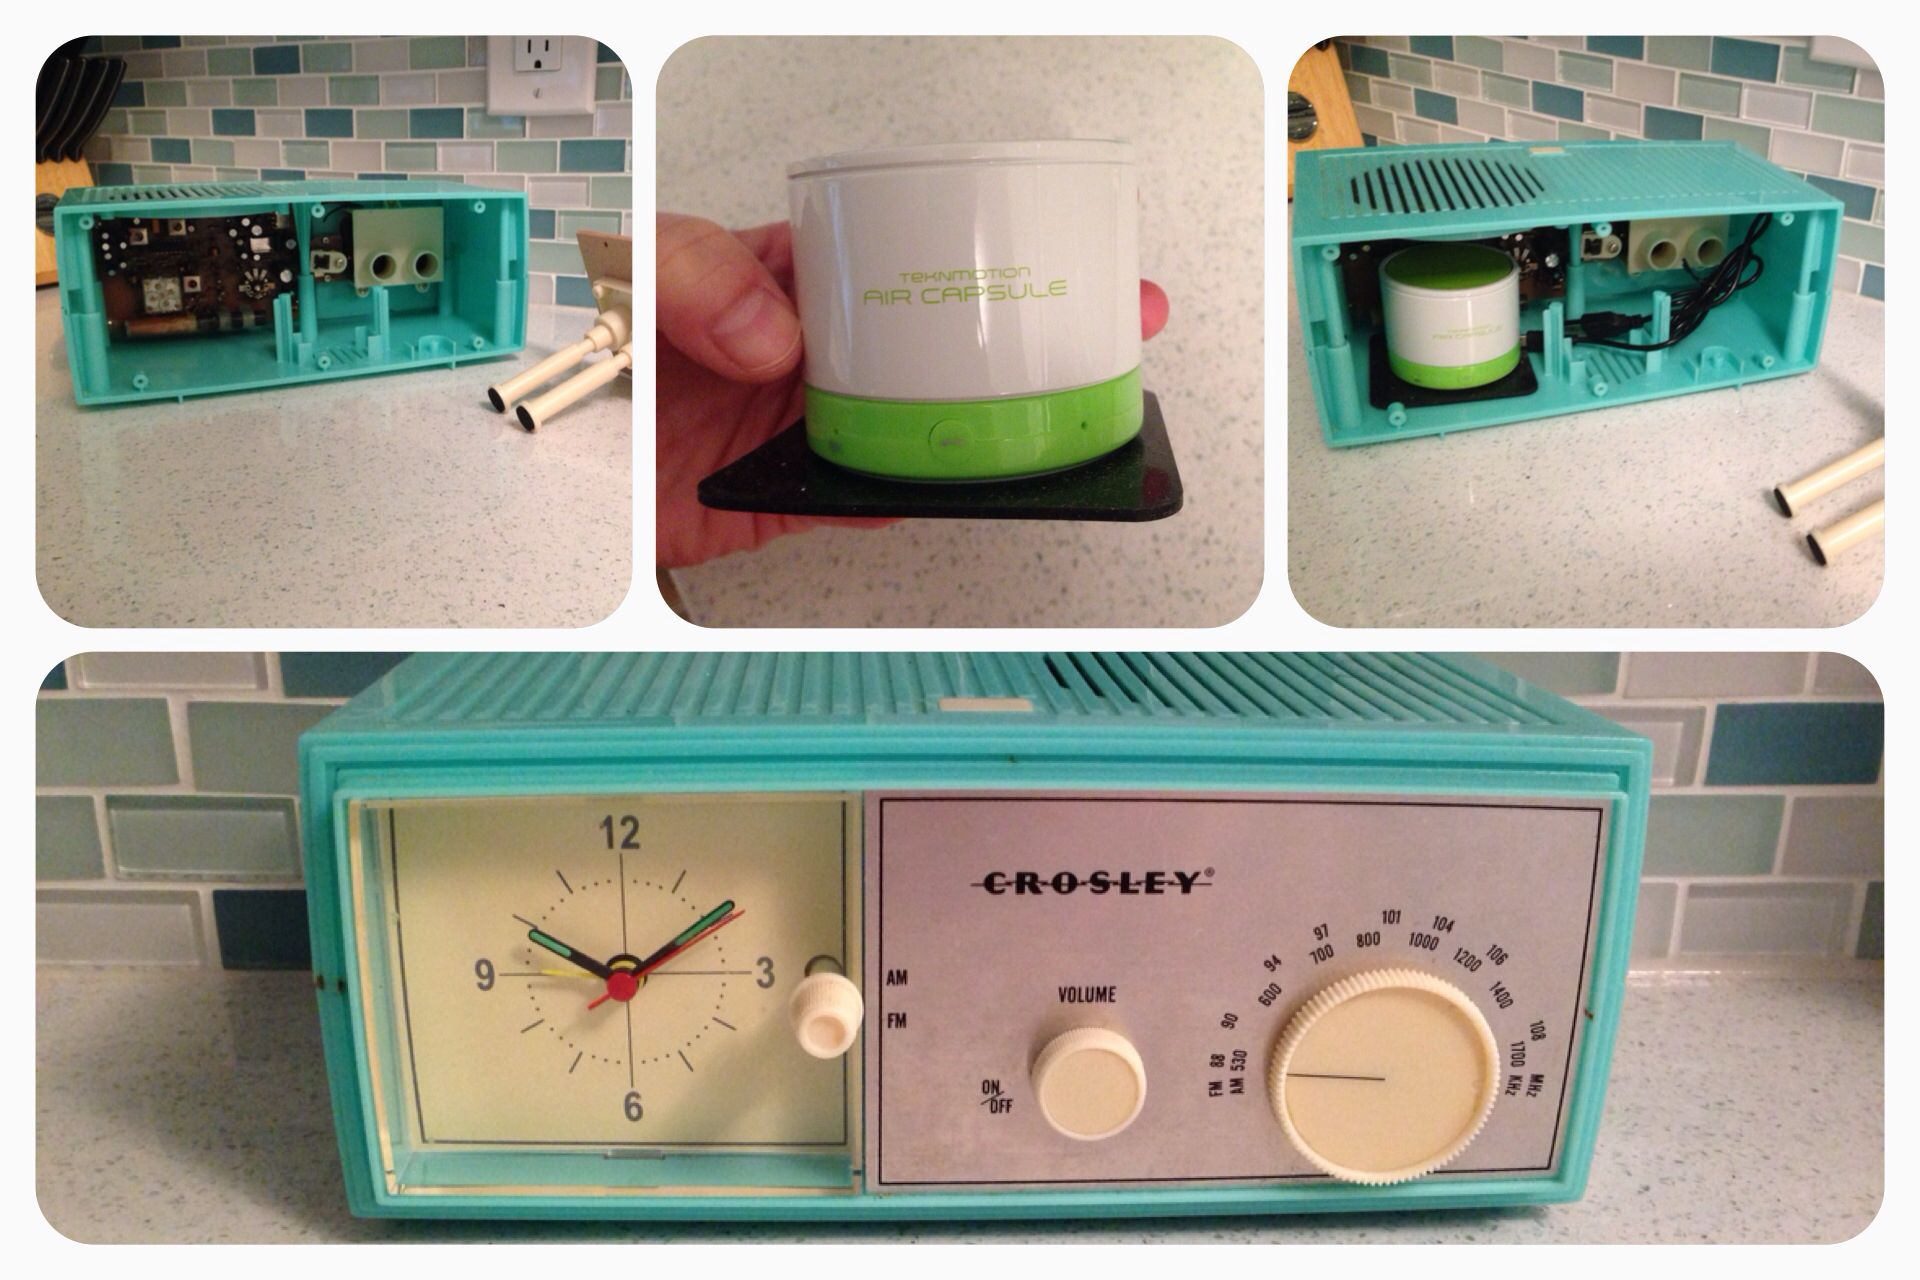 Convert An Old Radio To A Bluetooth Speaker 1 Gut The Radio Especially The Speaker 2 Buy This Awesome Little Bluetoo Retro Crafts Old Radios Retro Radios